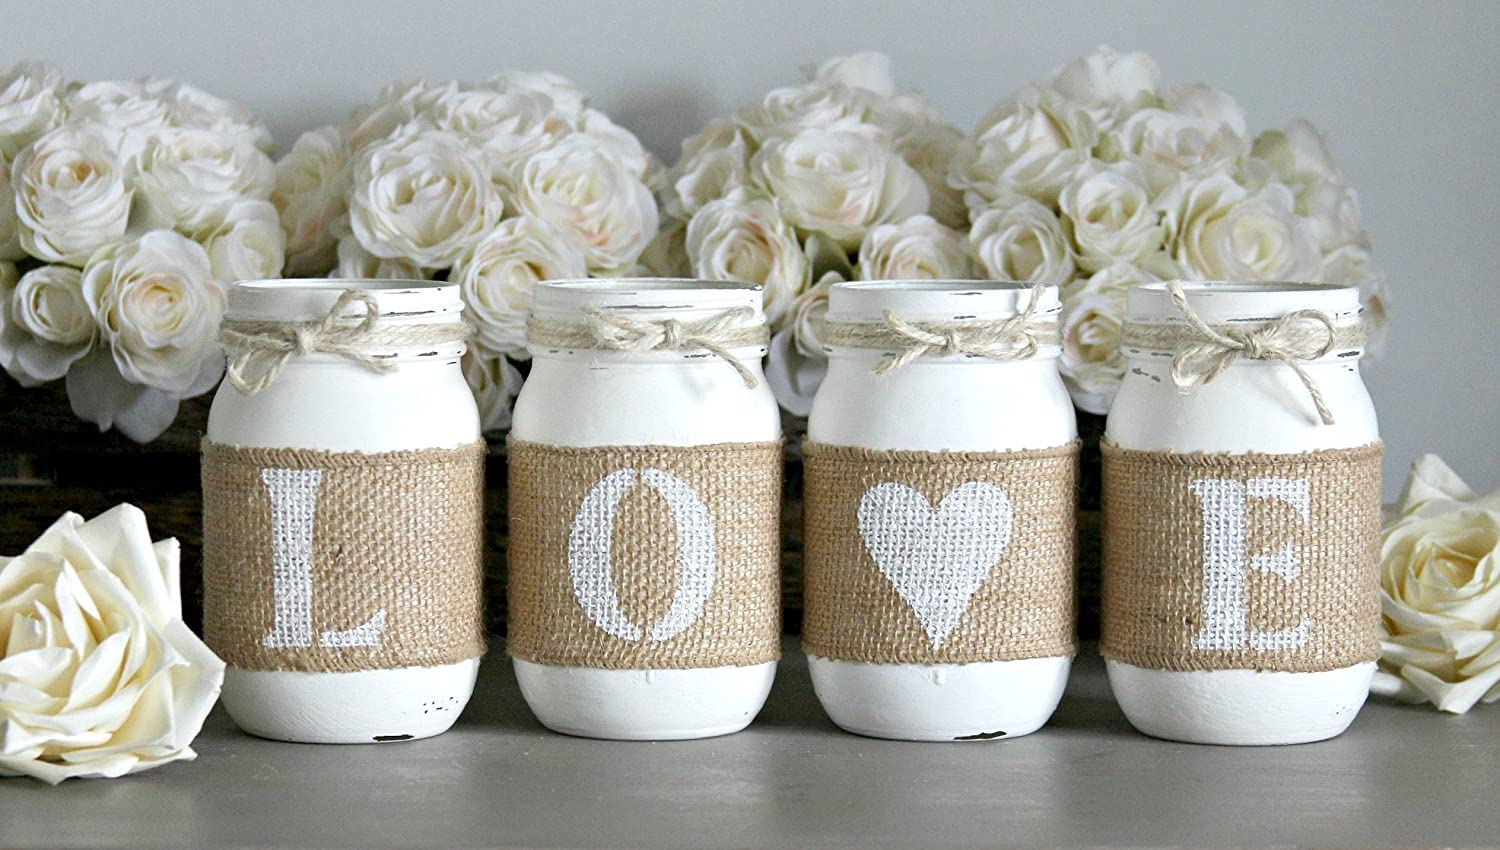 Luxury Wedding Table Centerpieces With Mason Jars Vignette - The ...